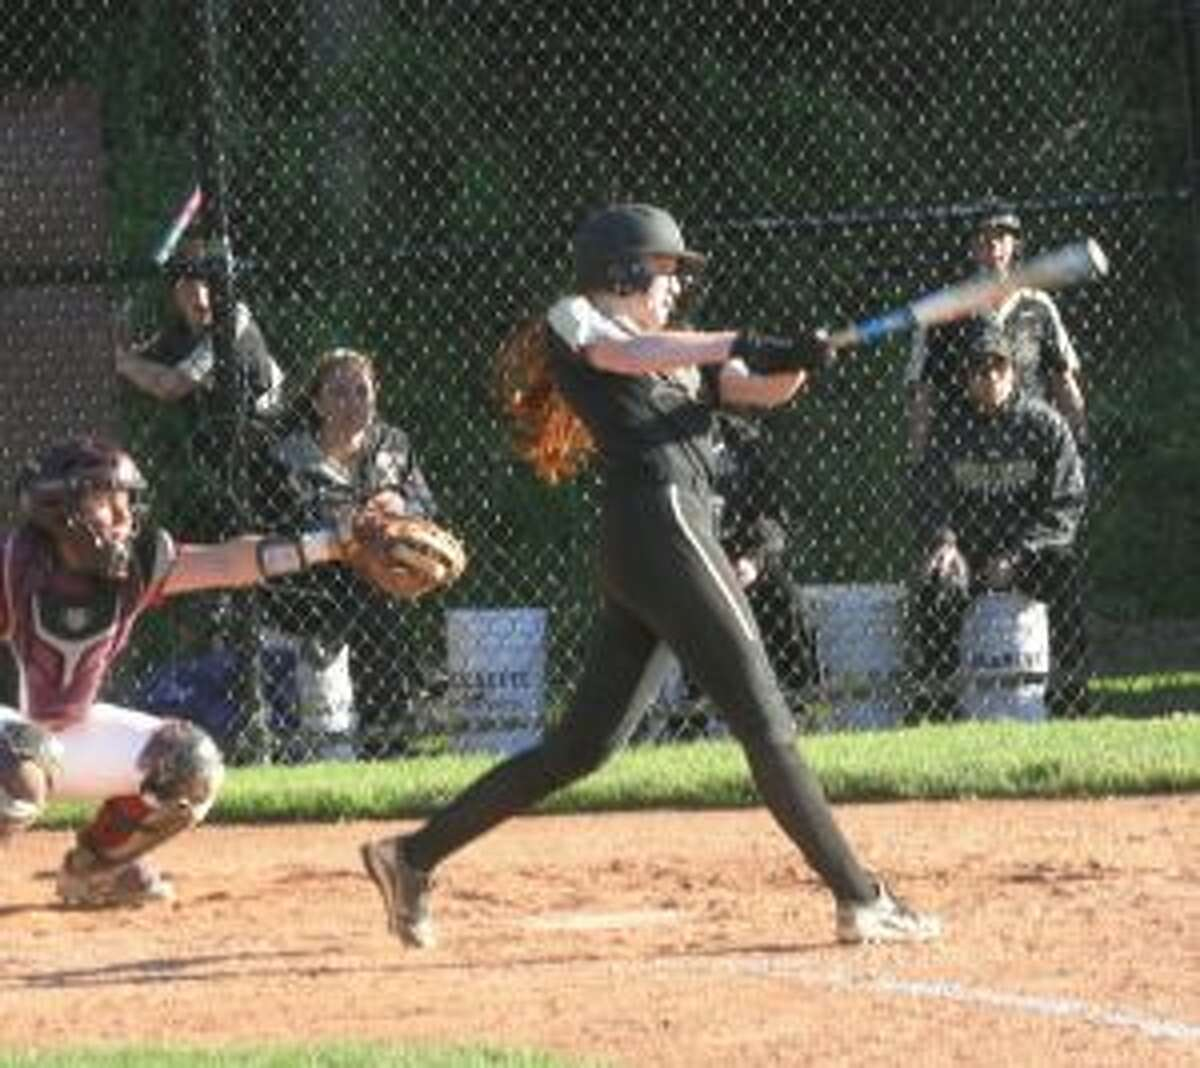 Taylor Brown was one of three Trumbull High seniors who knocked in runs for the Lady Eagles. - Bill Bloxsom photo